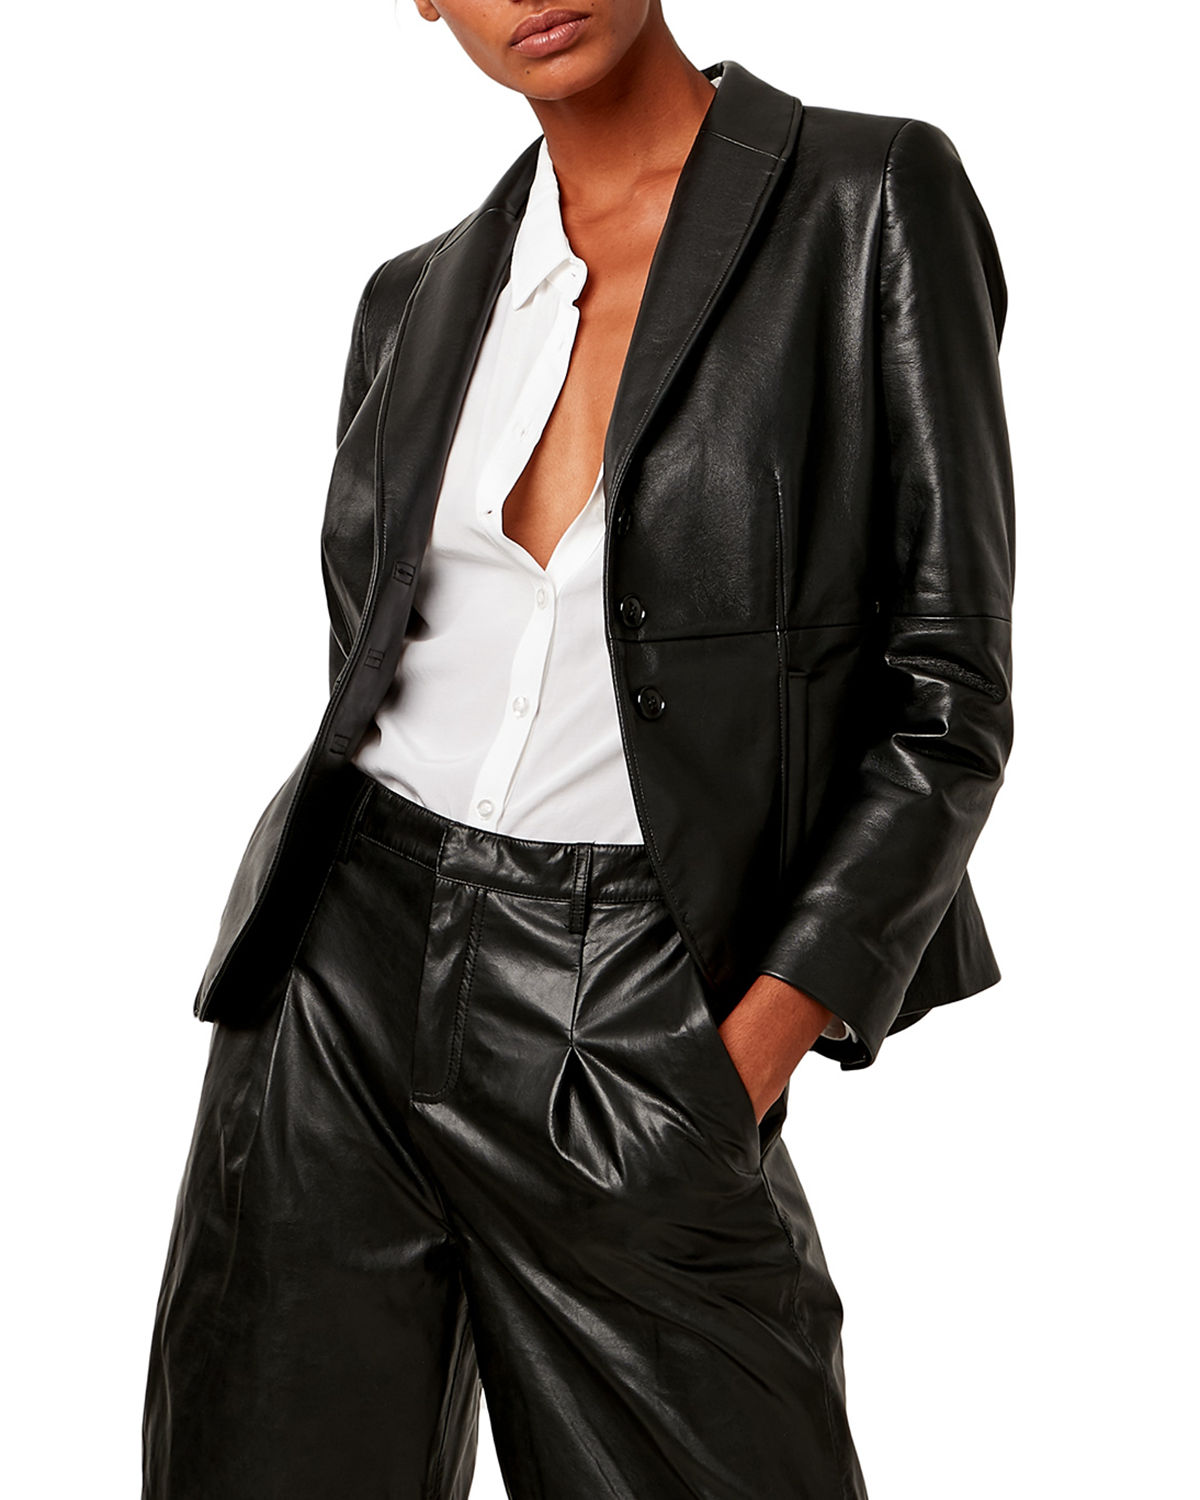 The Denise Recycled Leather Blazer